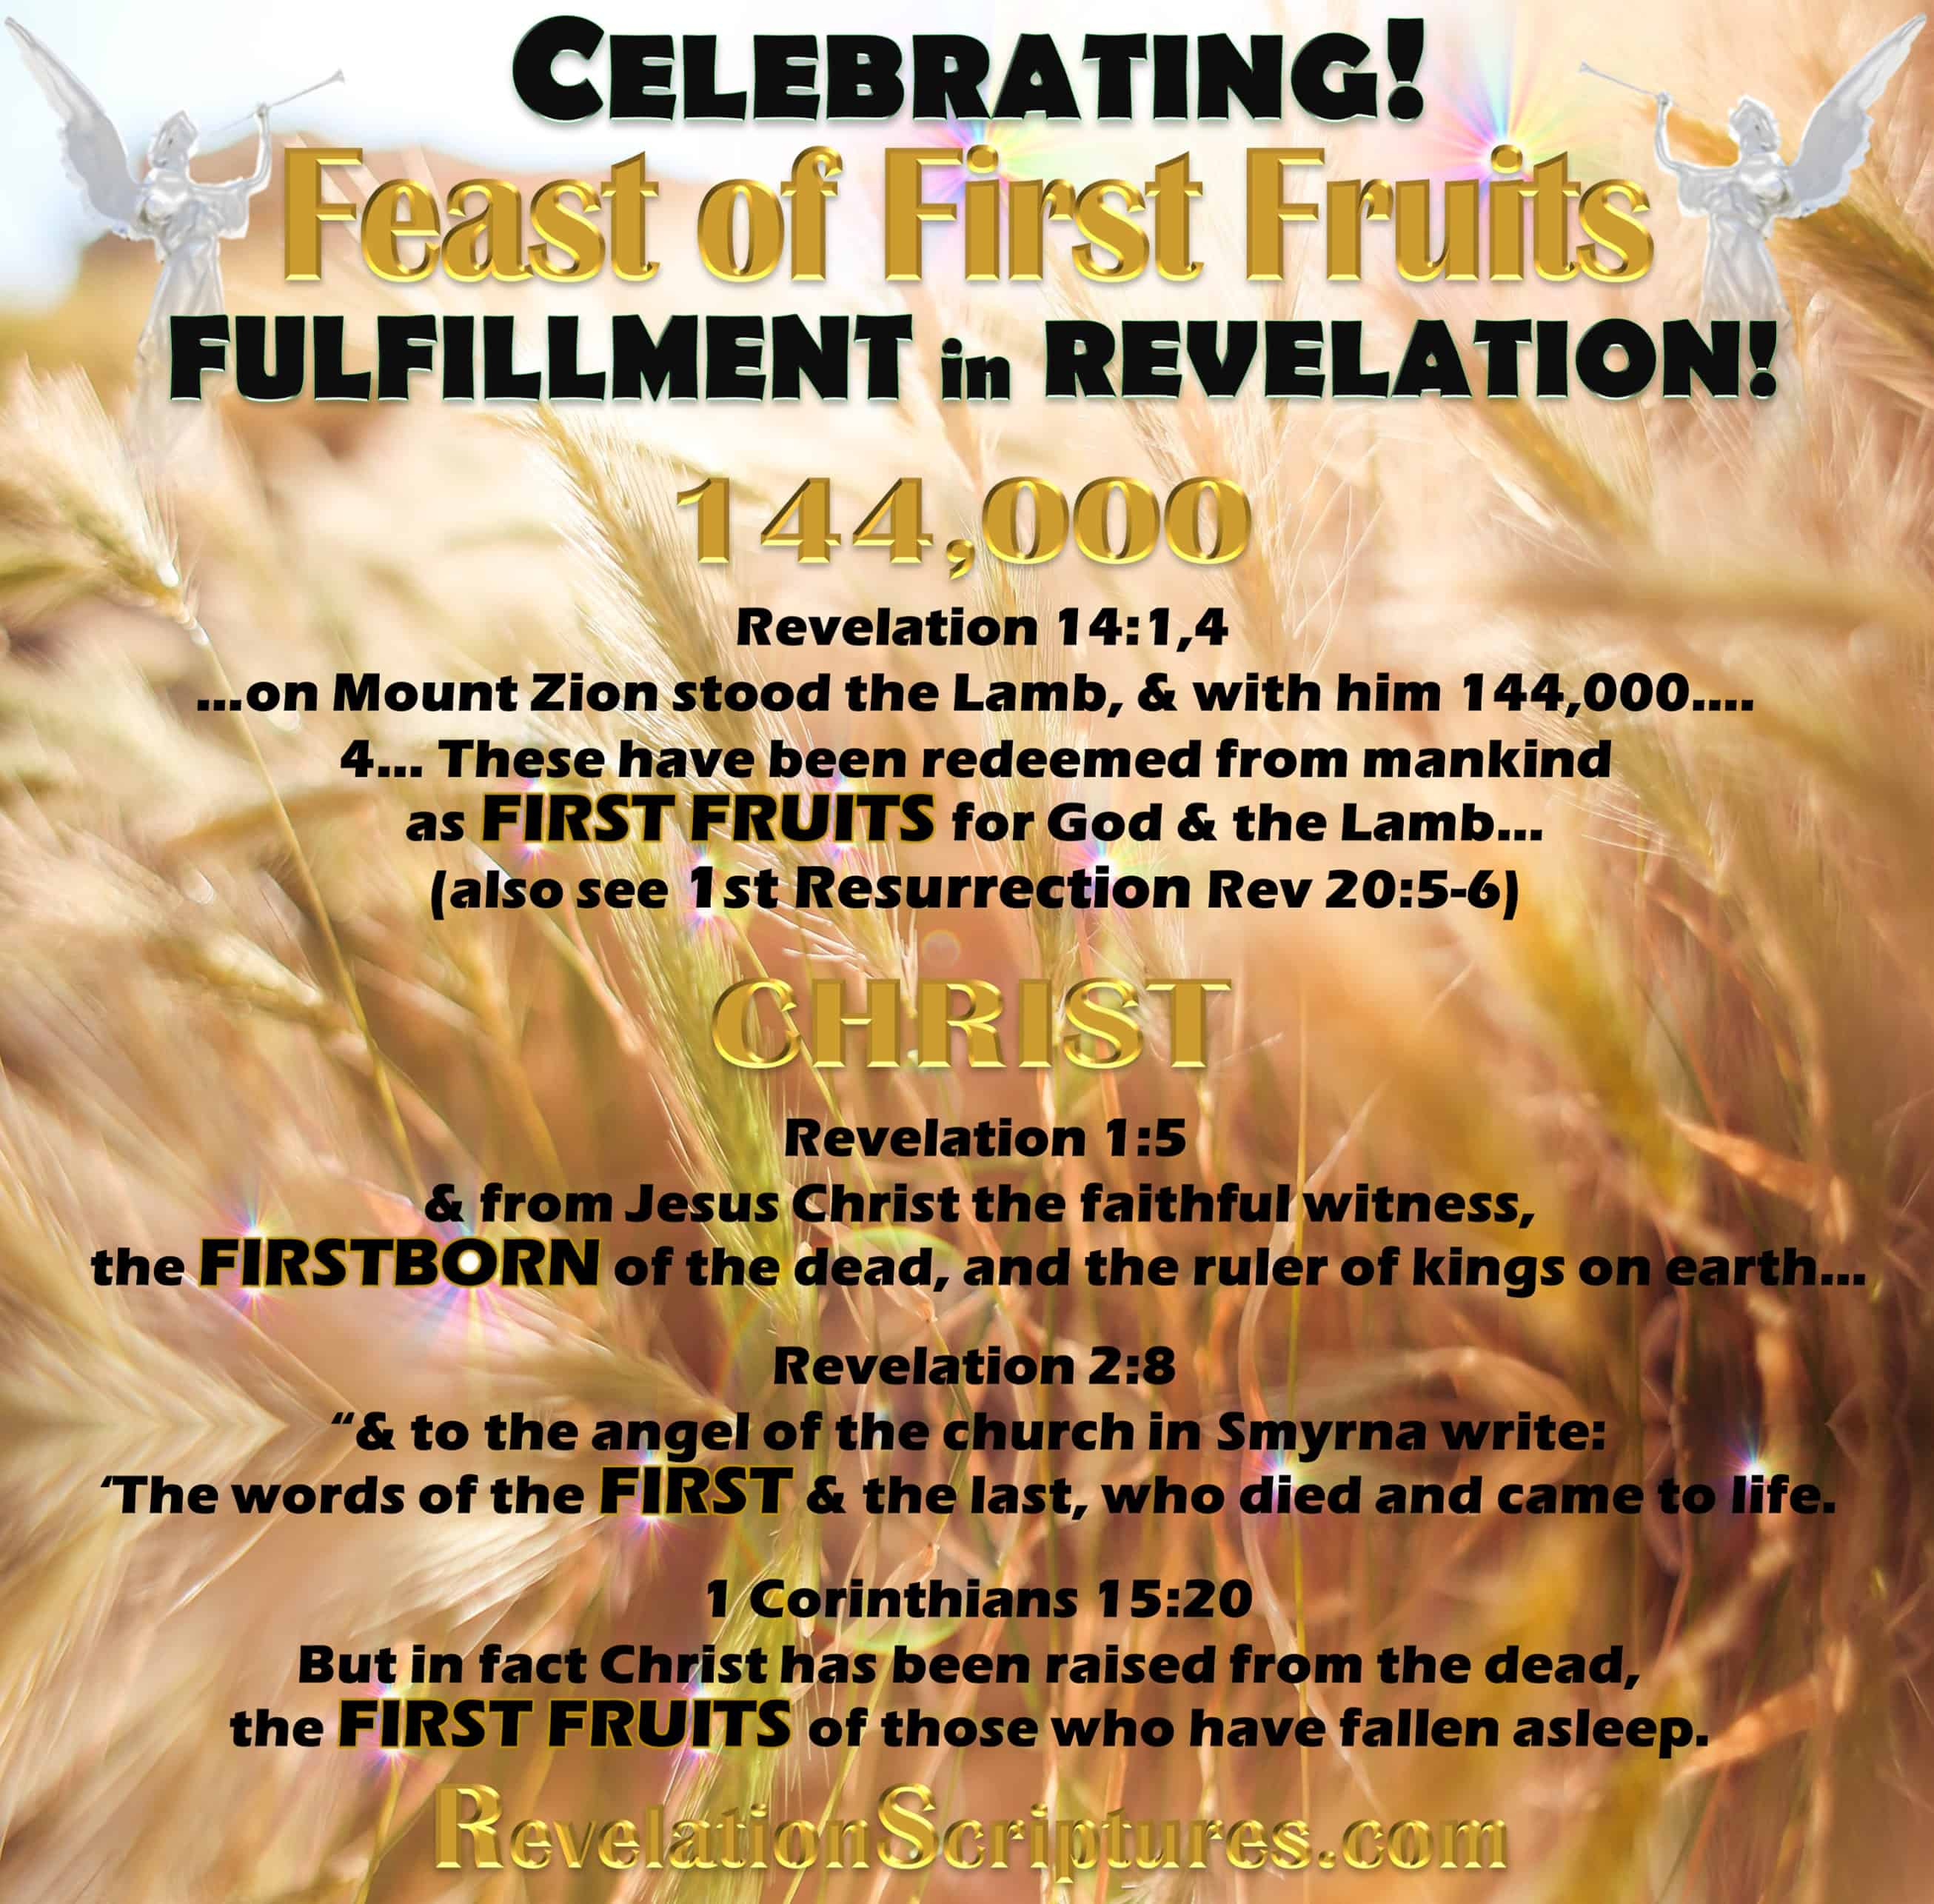 Celebrating the Feast of First Fruits Fulfillment in the ...